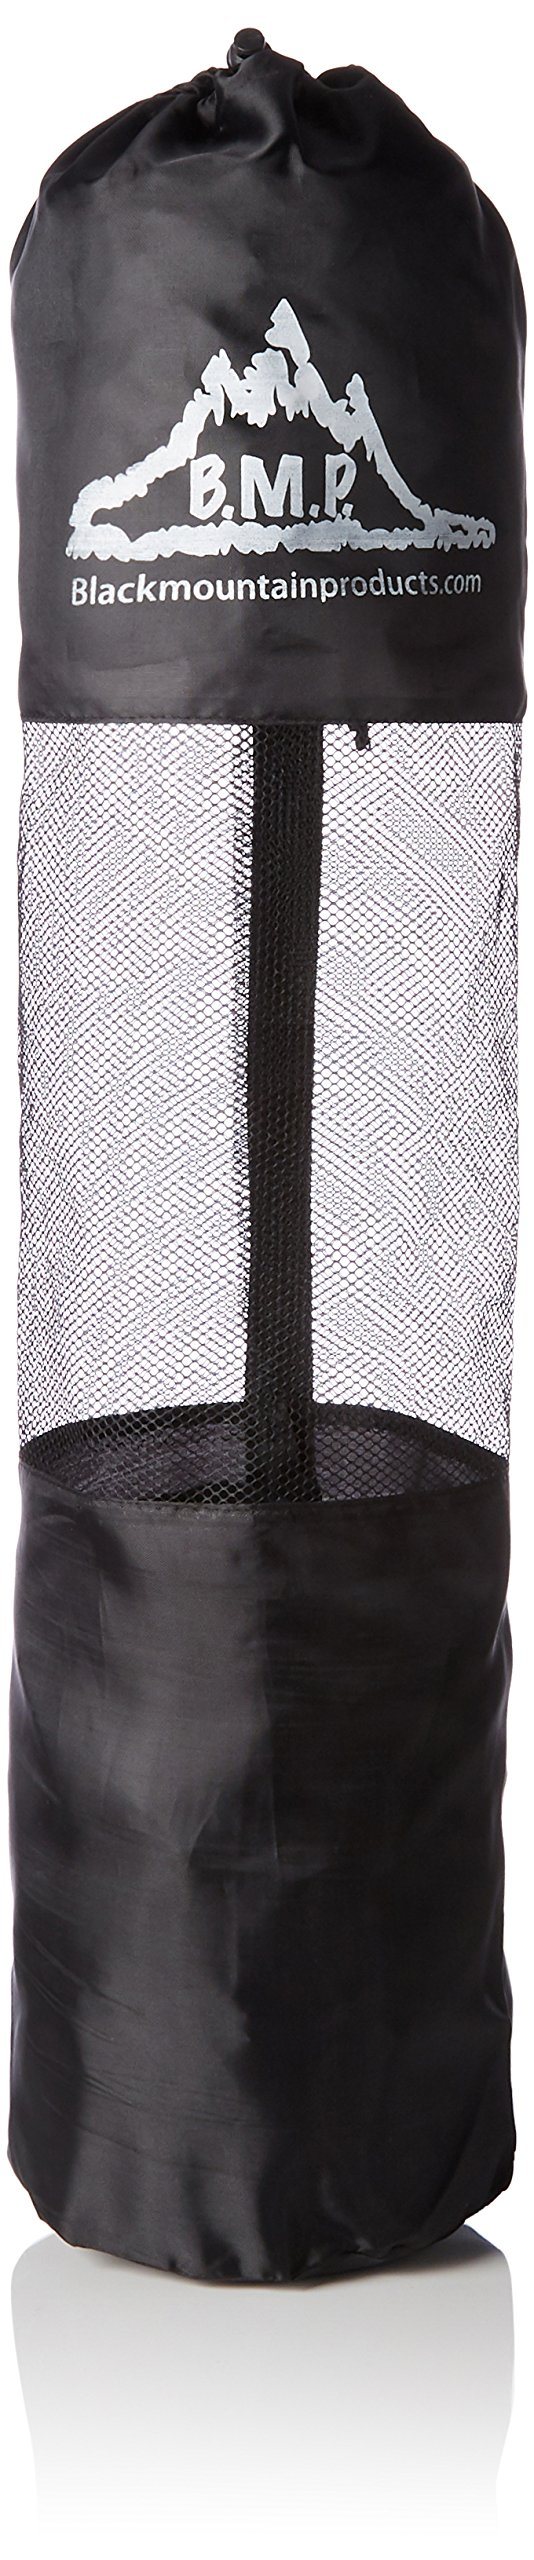 Black Mountain Yoga Mat Bag with Carrying Strap Products